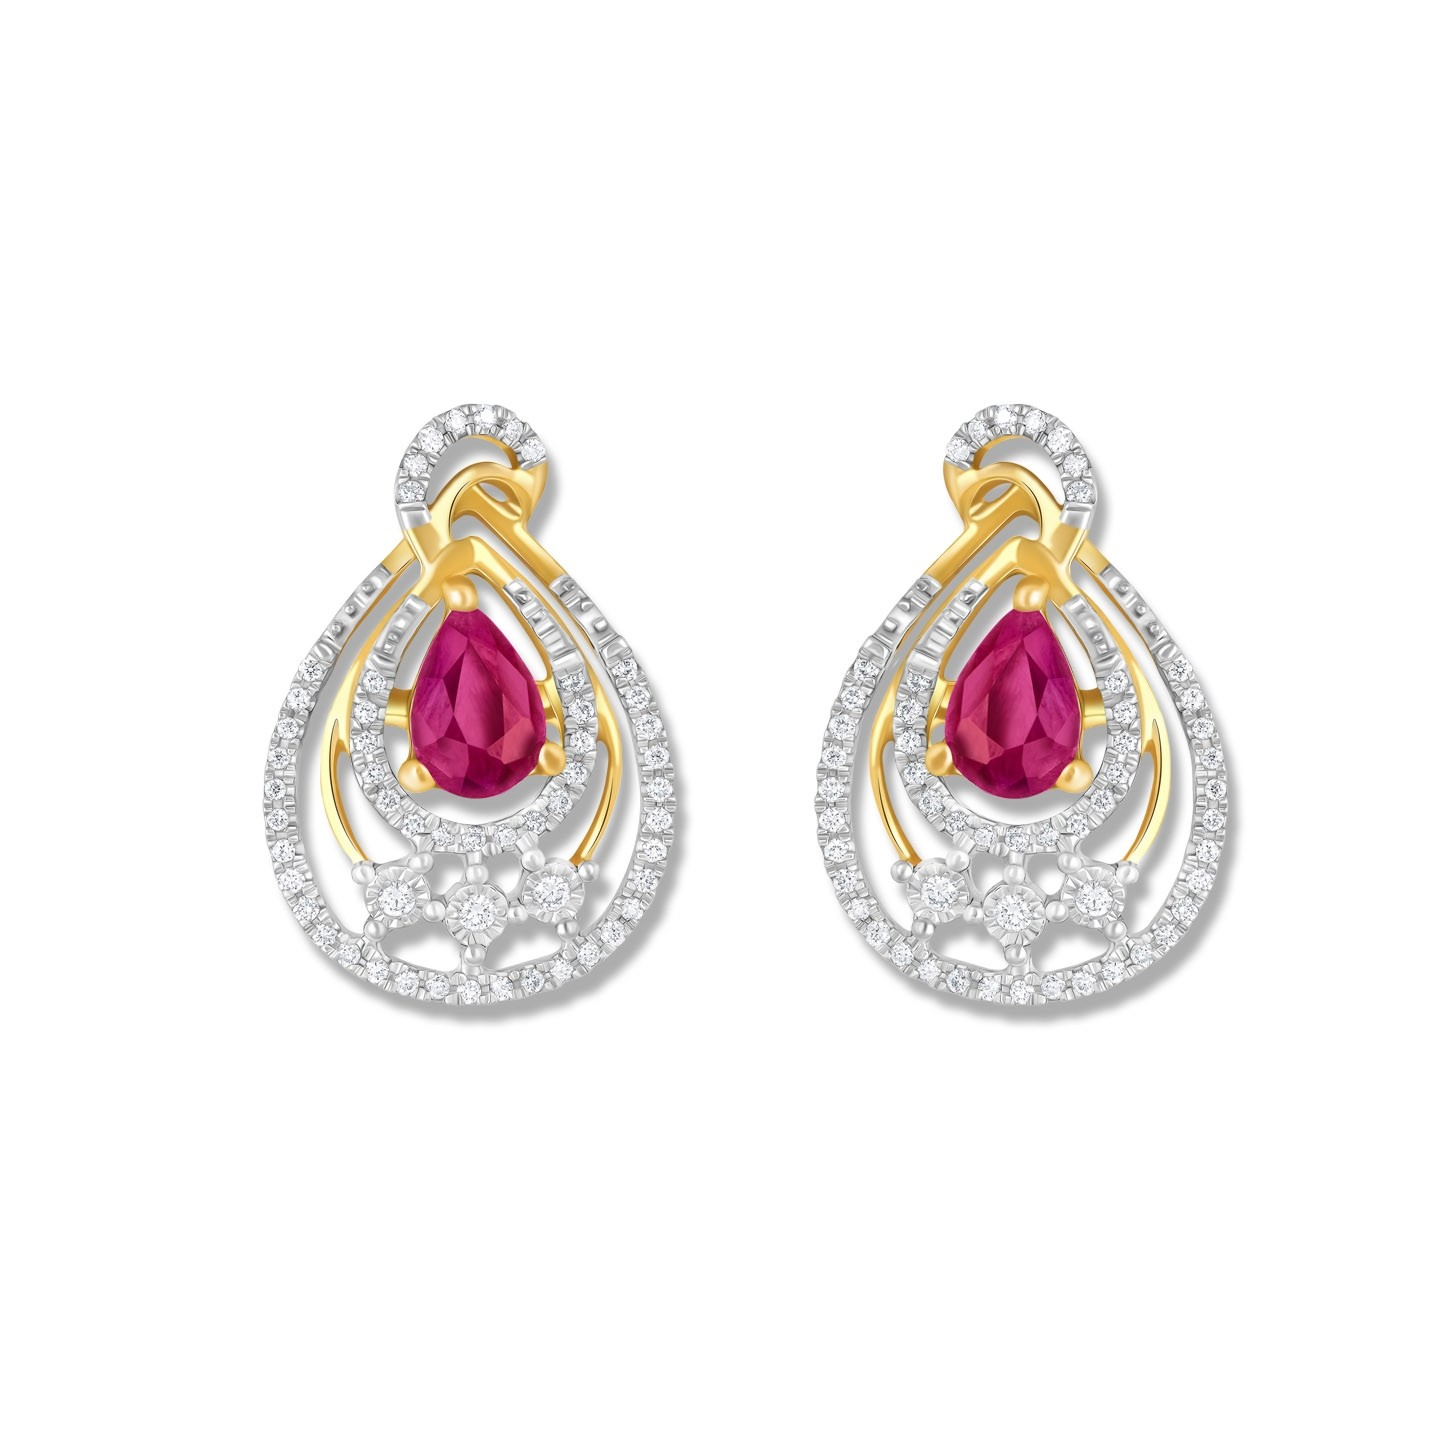 DIAMOND EARRING KK-25RE